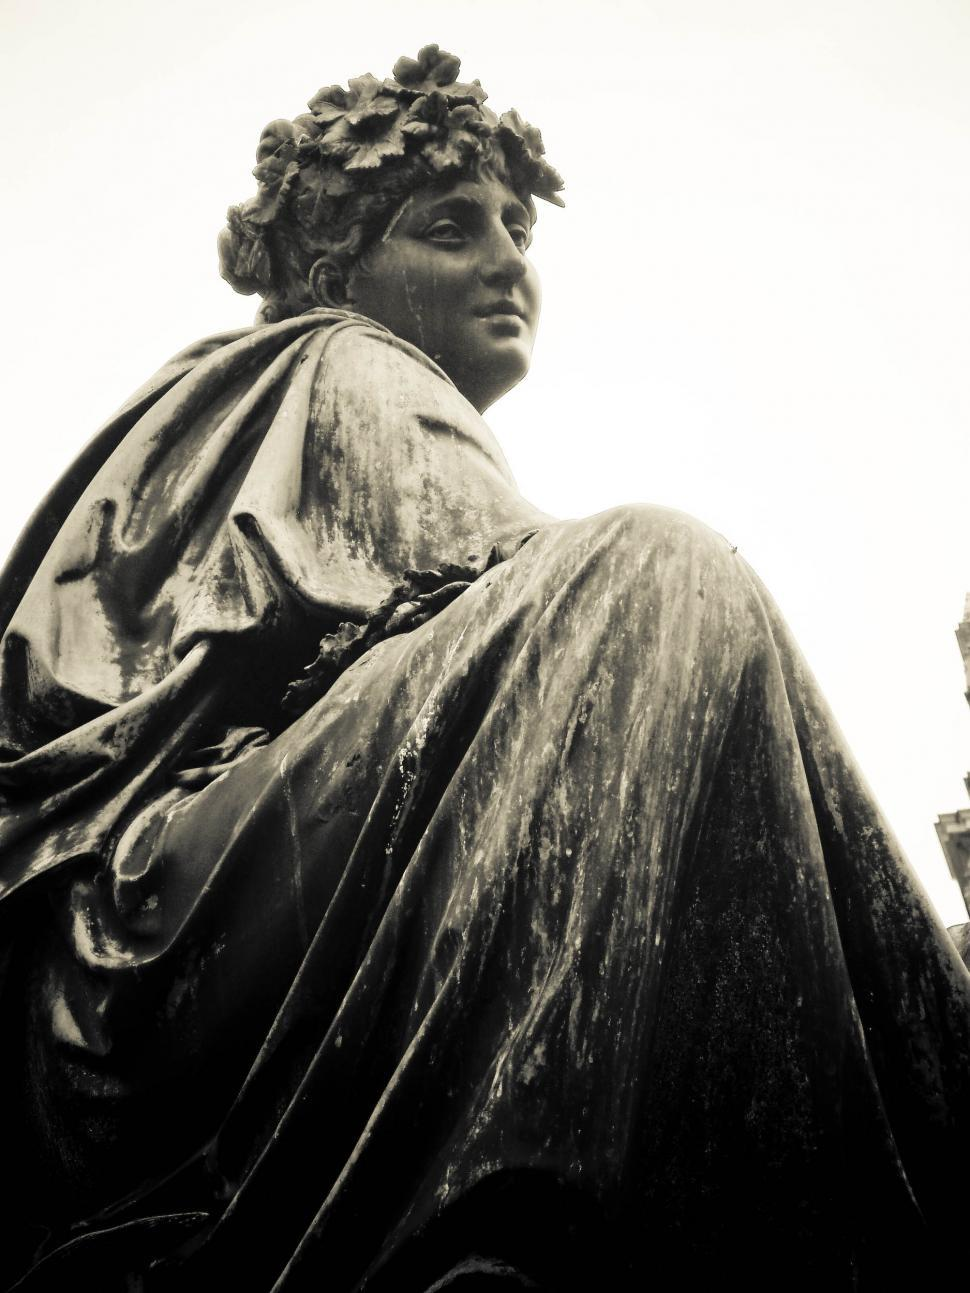 Download Free Stock HD Photo of statue Online